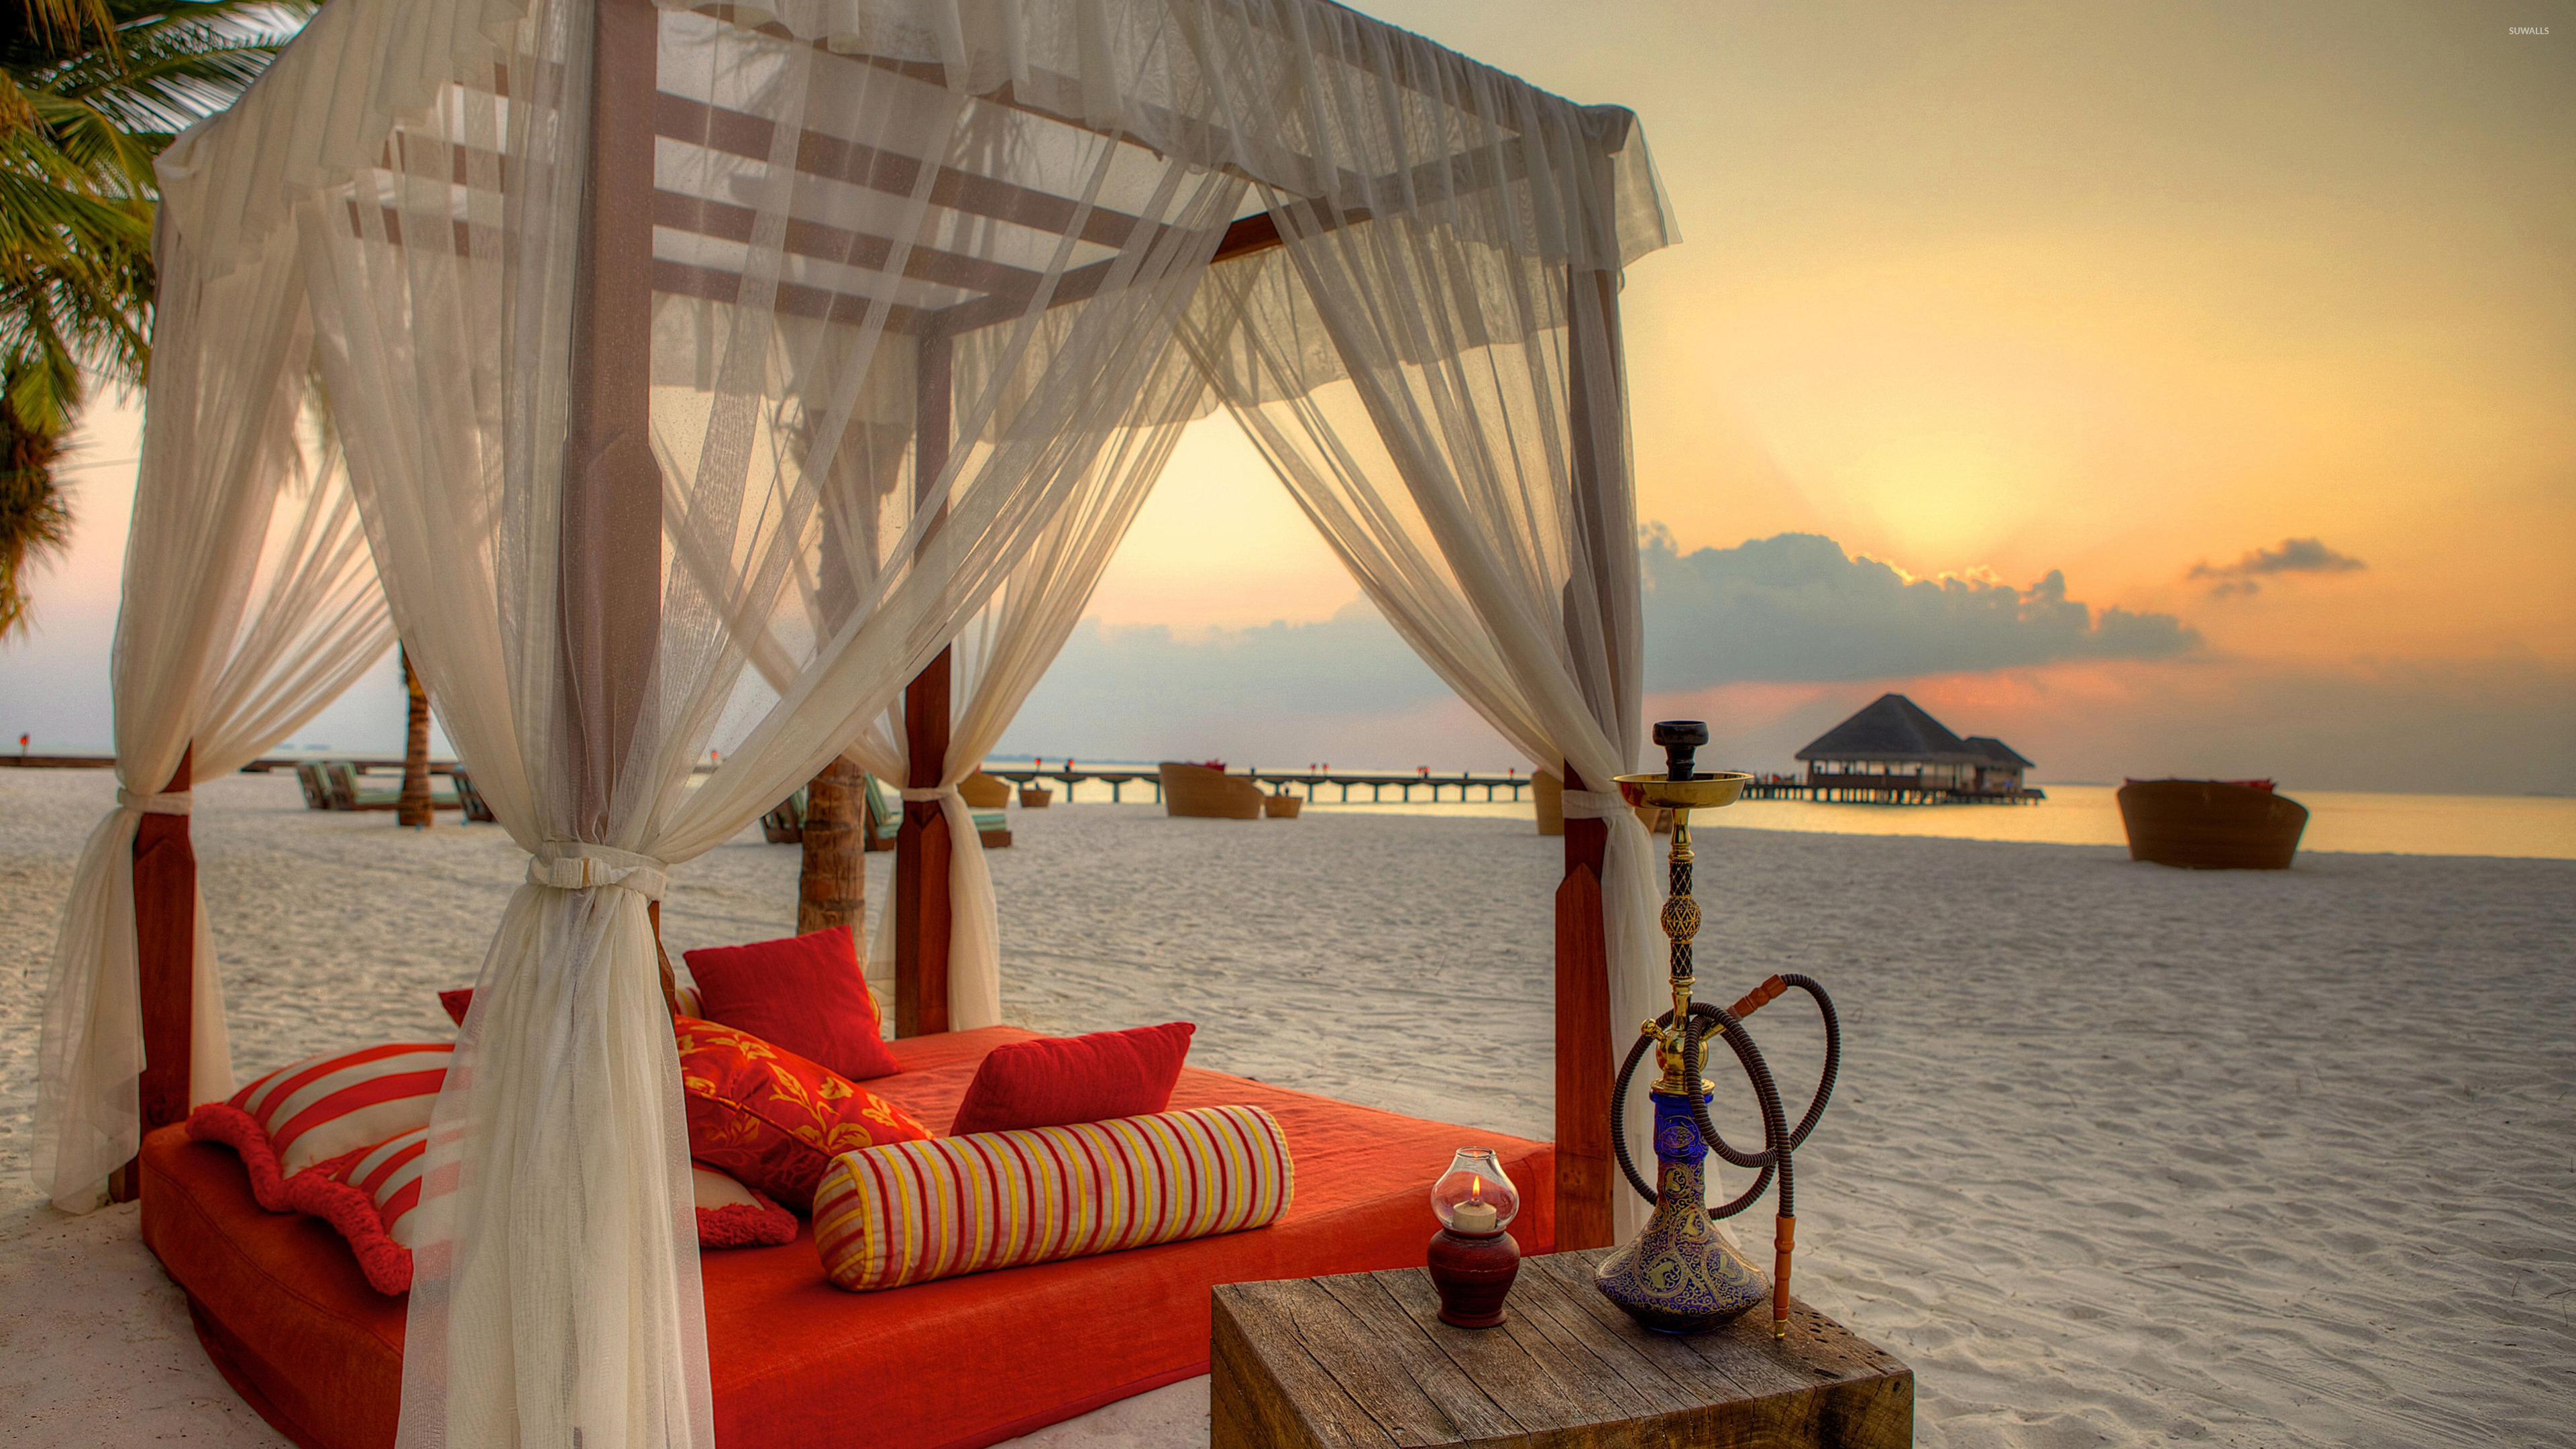 Beautiful Place To Relax Wallpaper